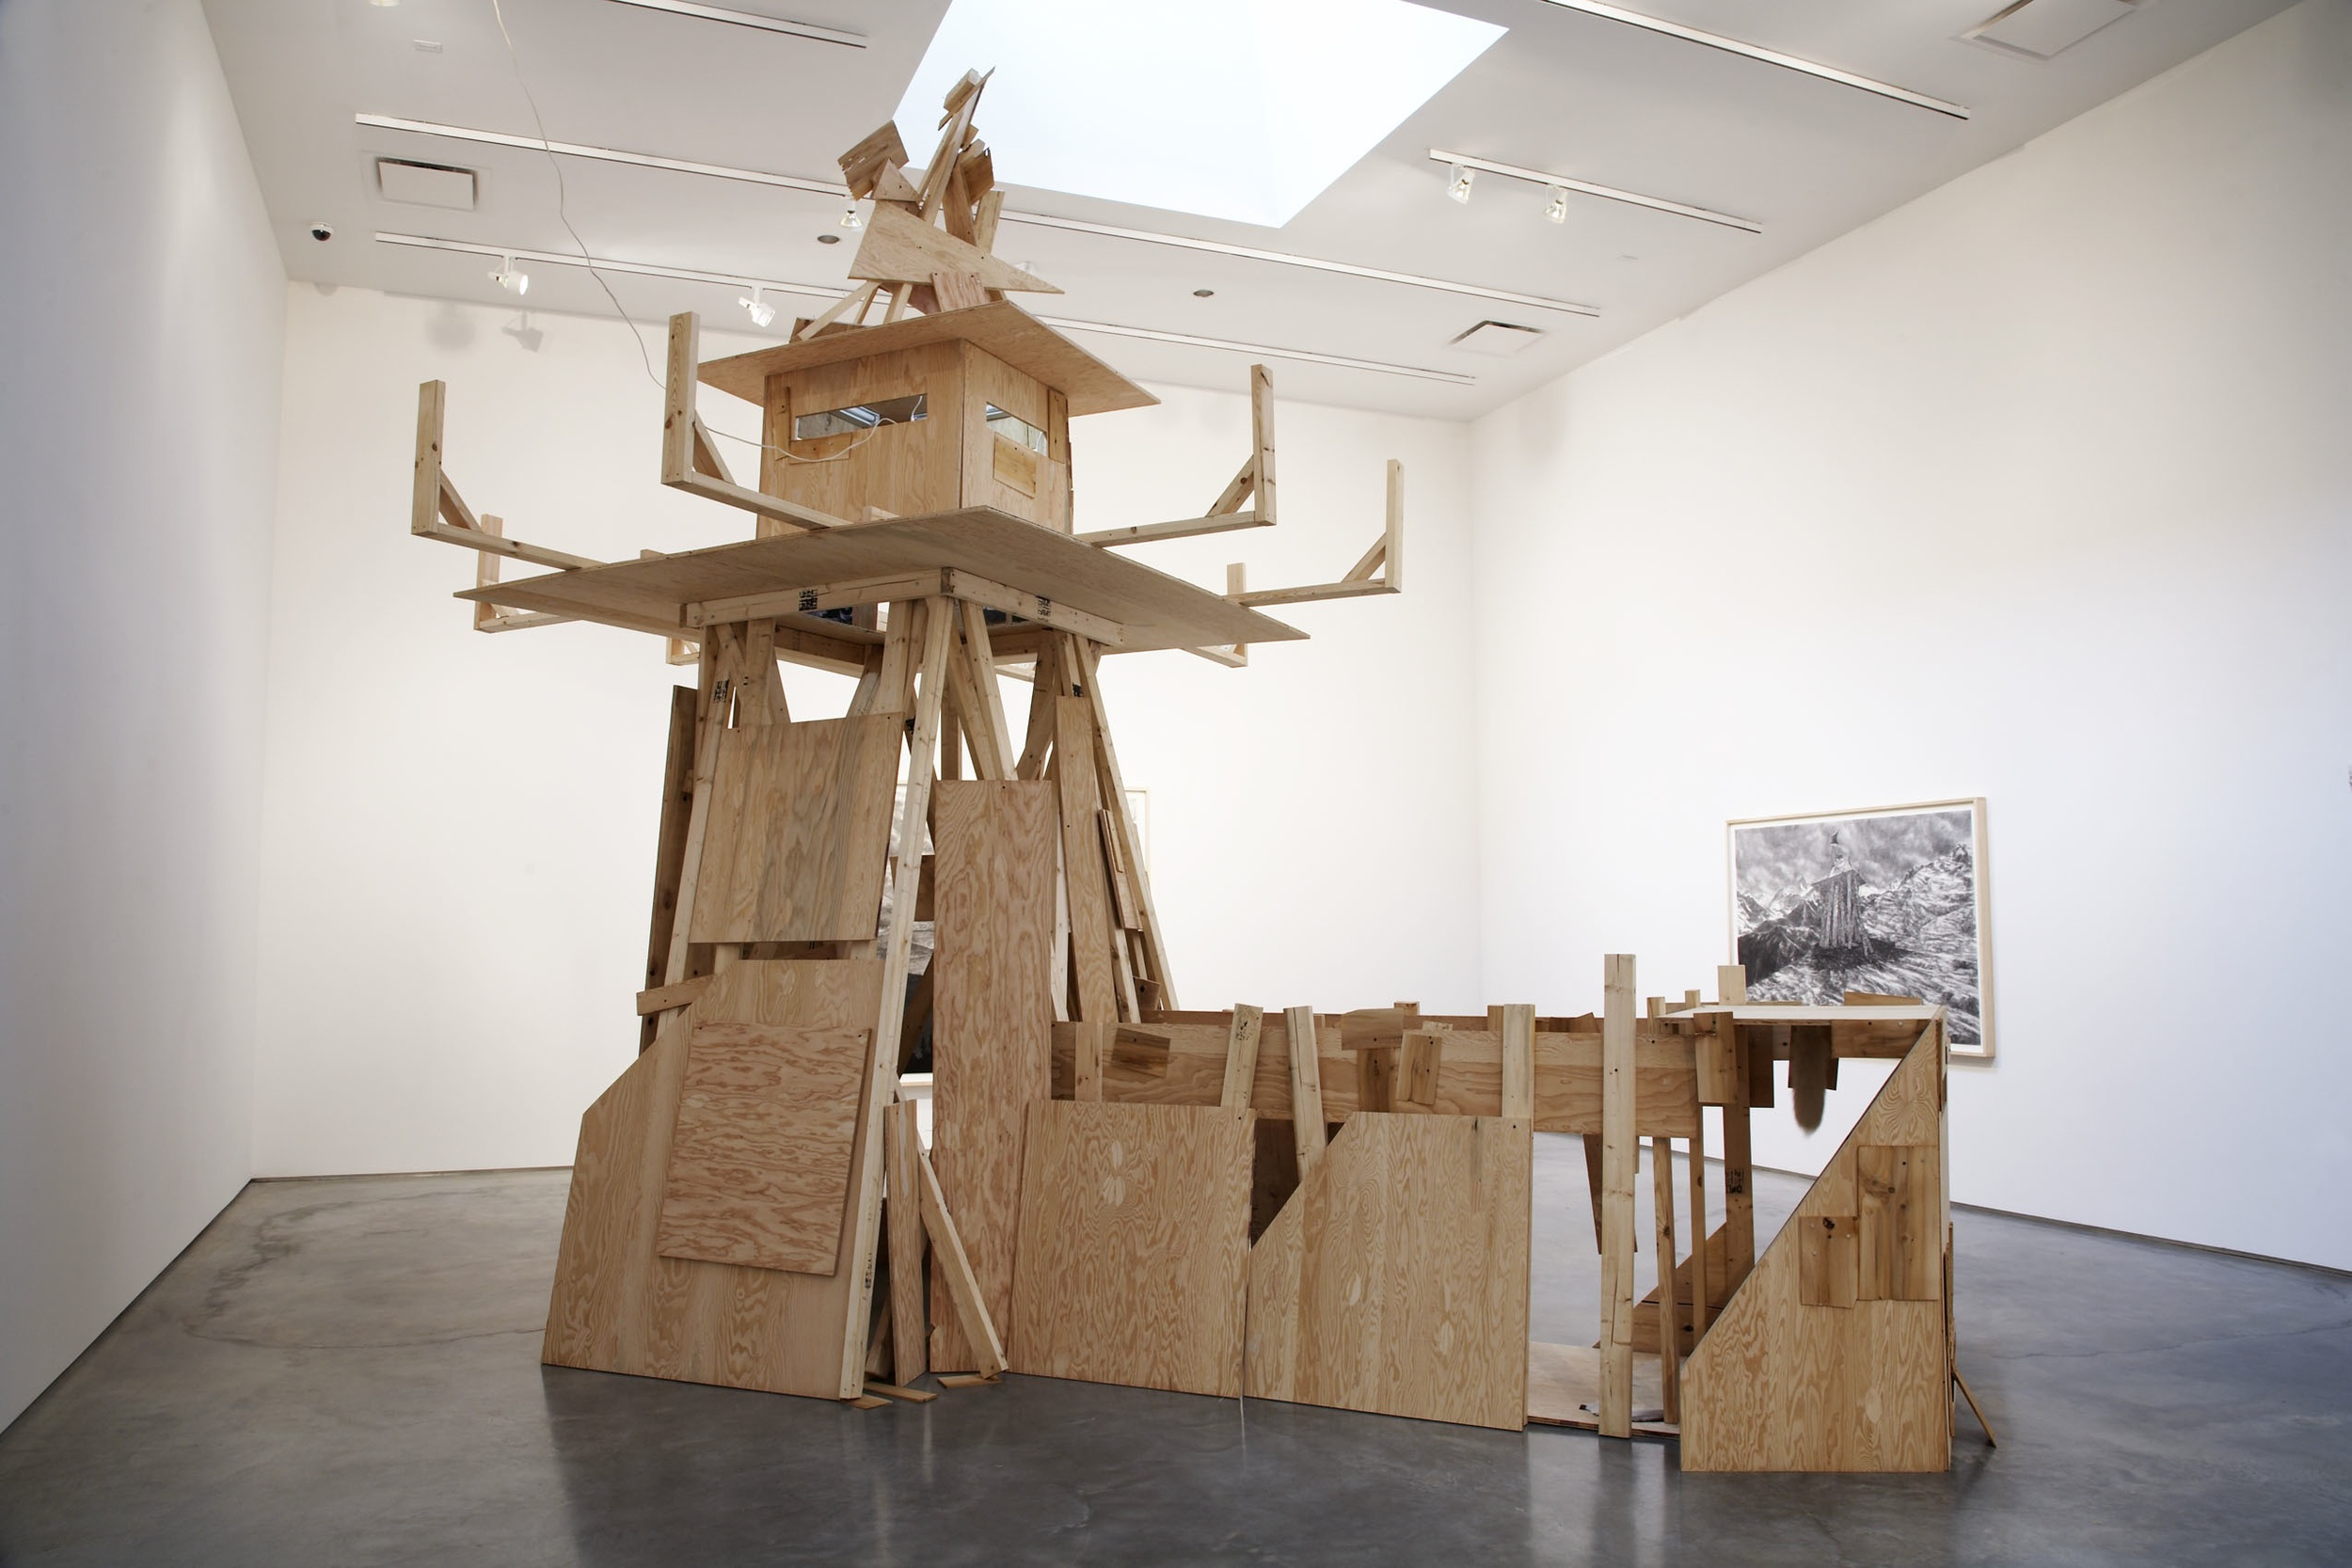 Installation view of Adam Helms at the Museum of Contemporary Art Denver, August 12, 2008 - January 18, 2009.